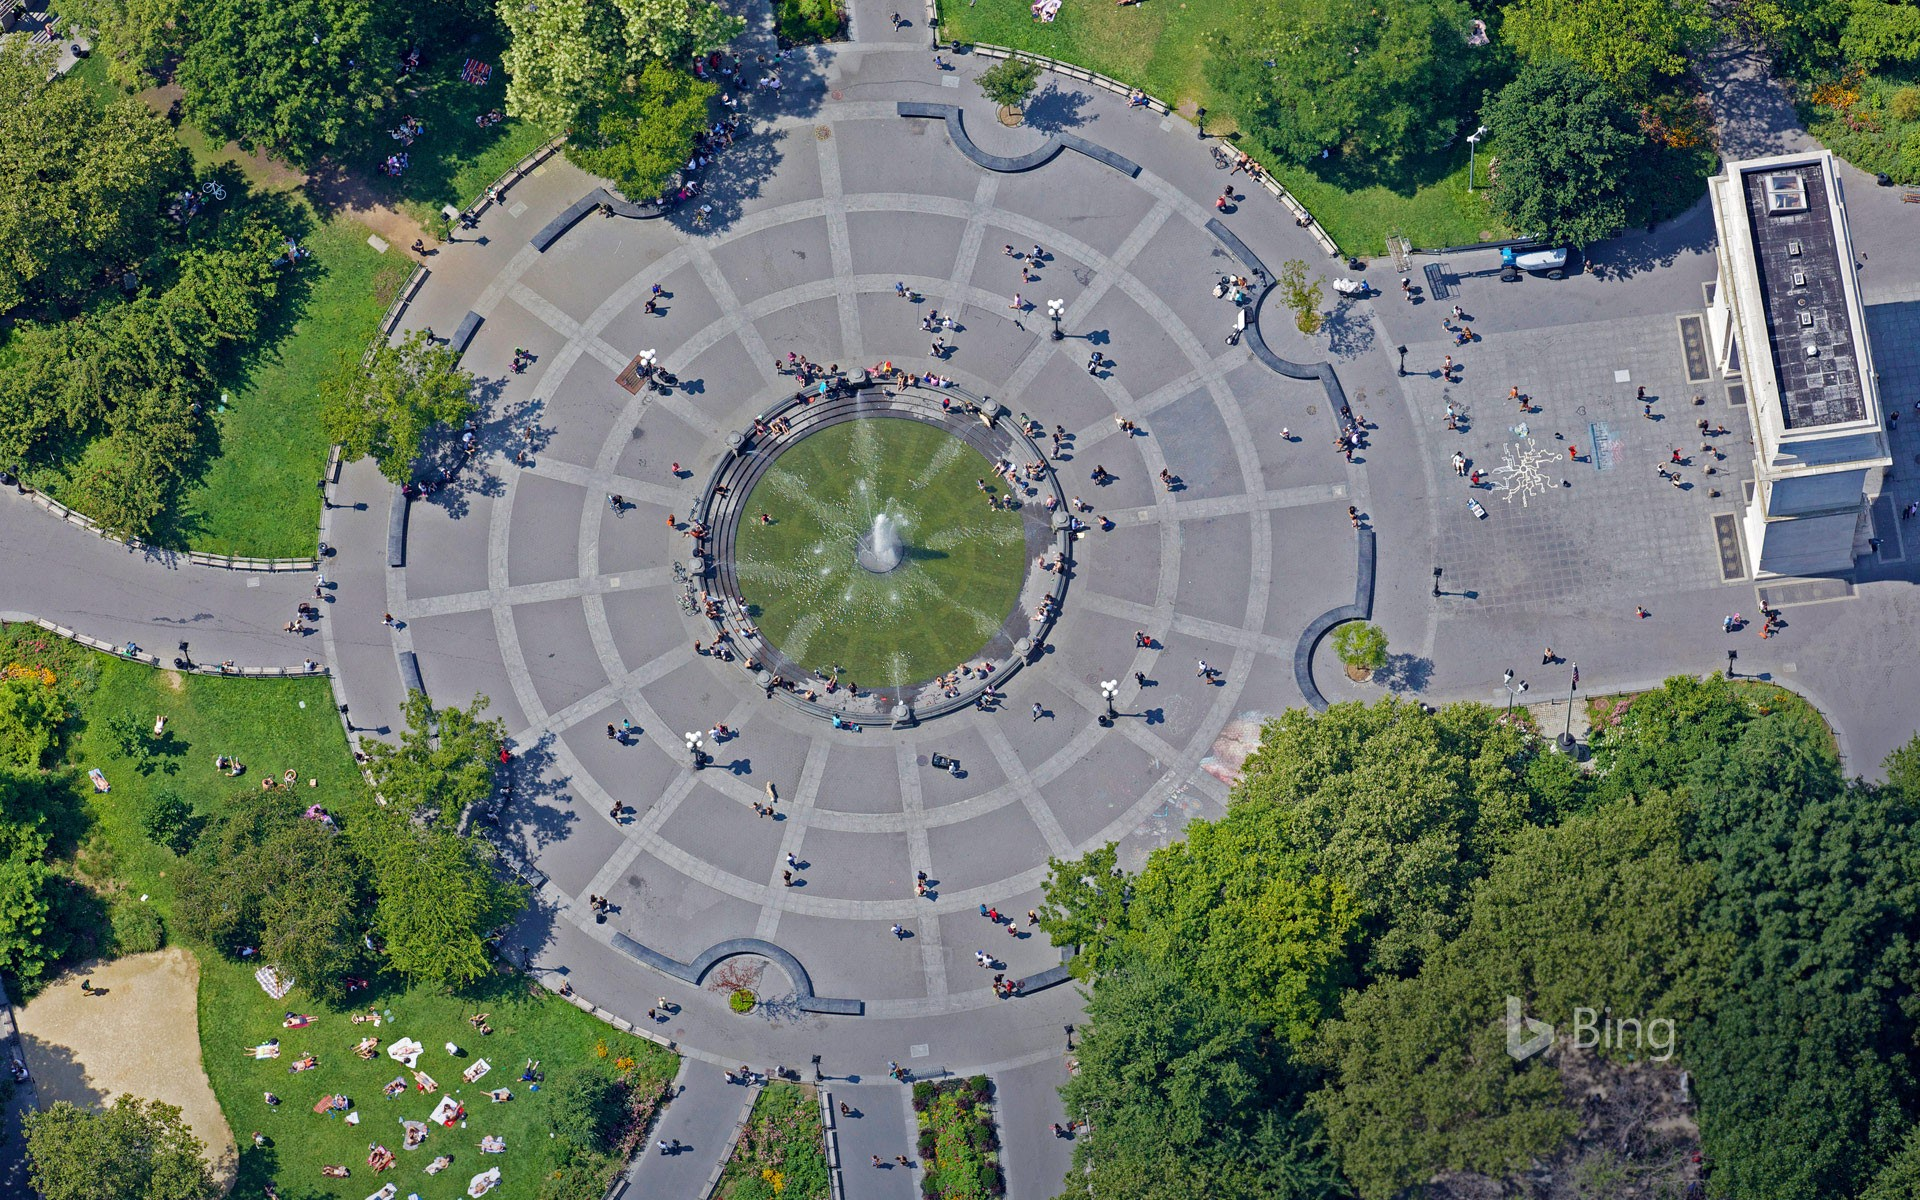 Aerial view of Washington Square Park, New York City, USA